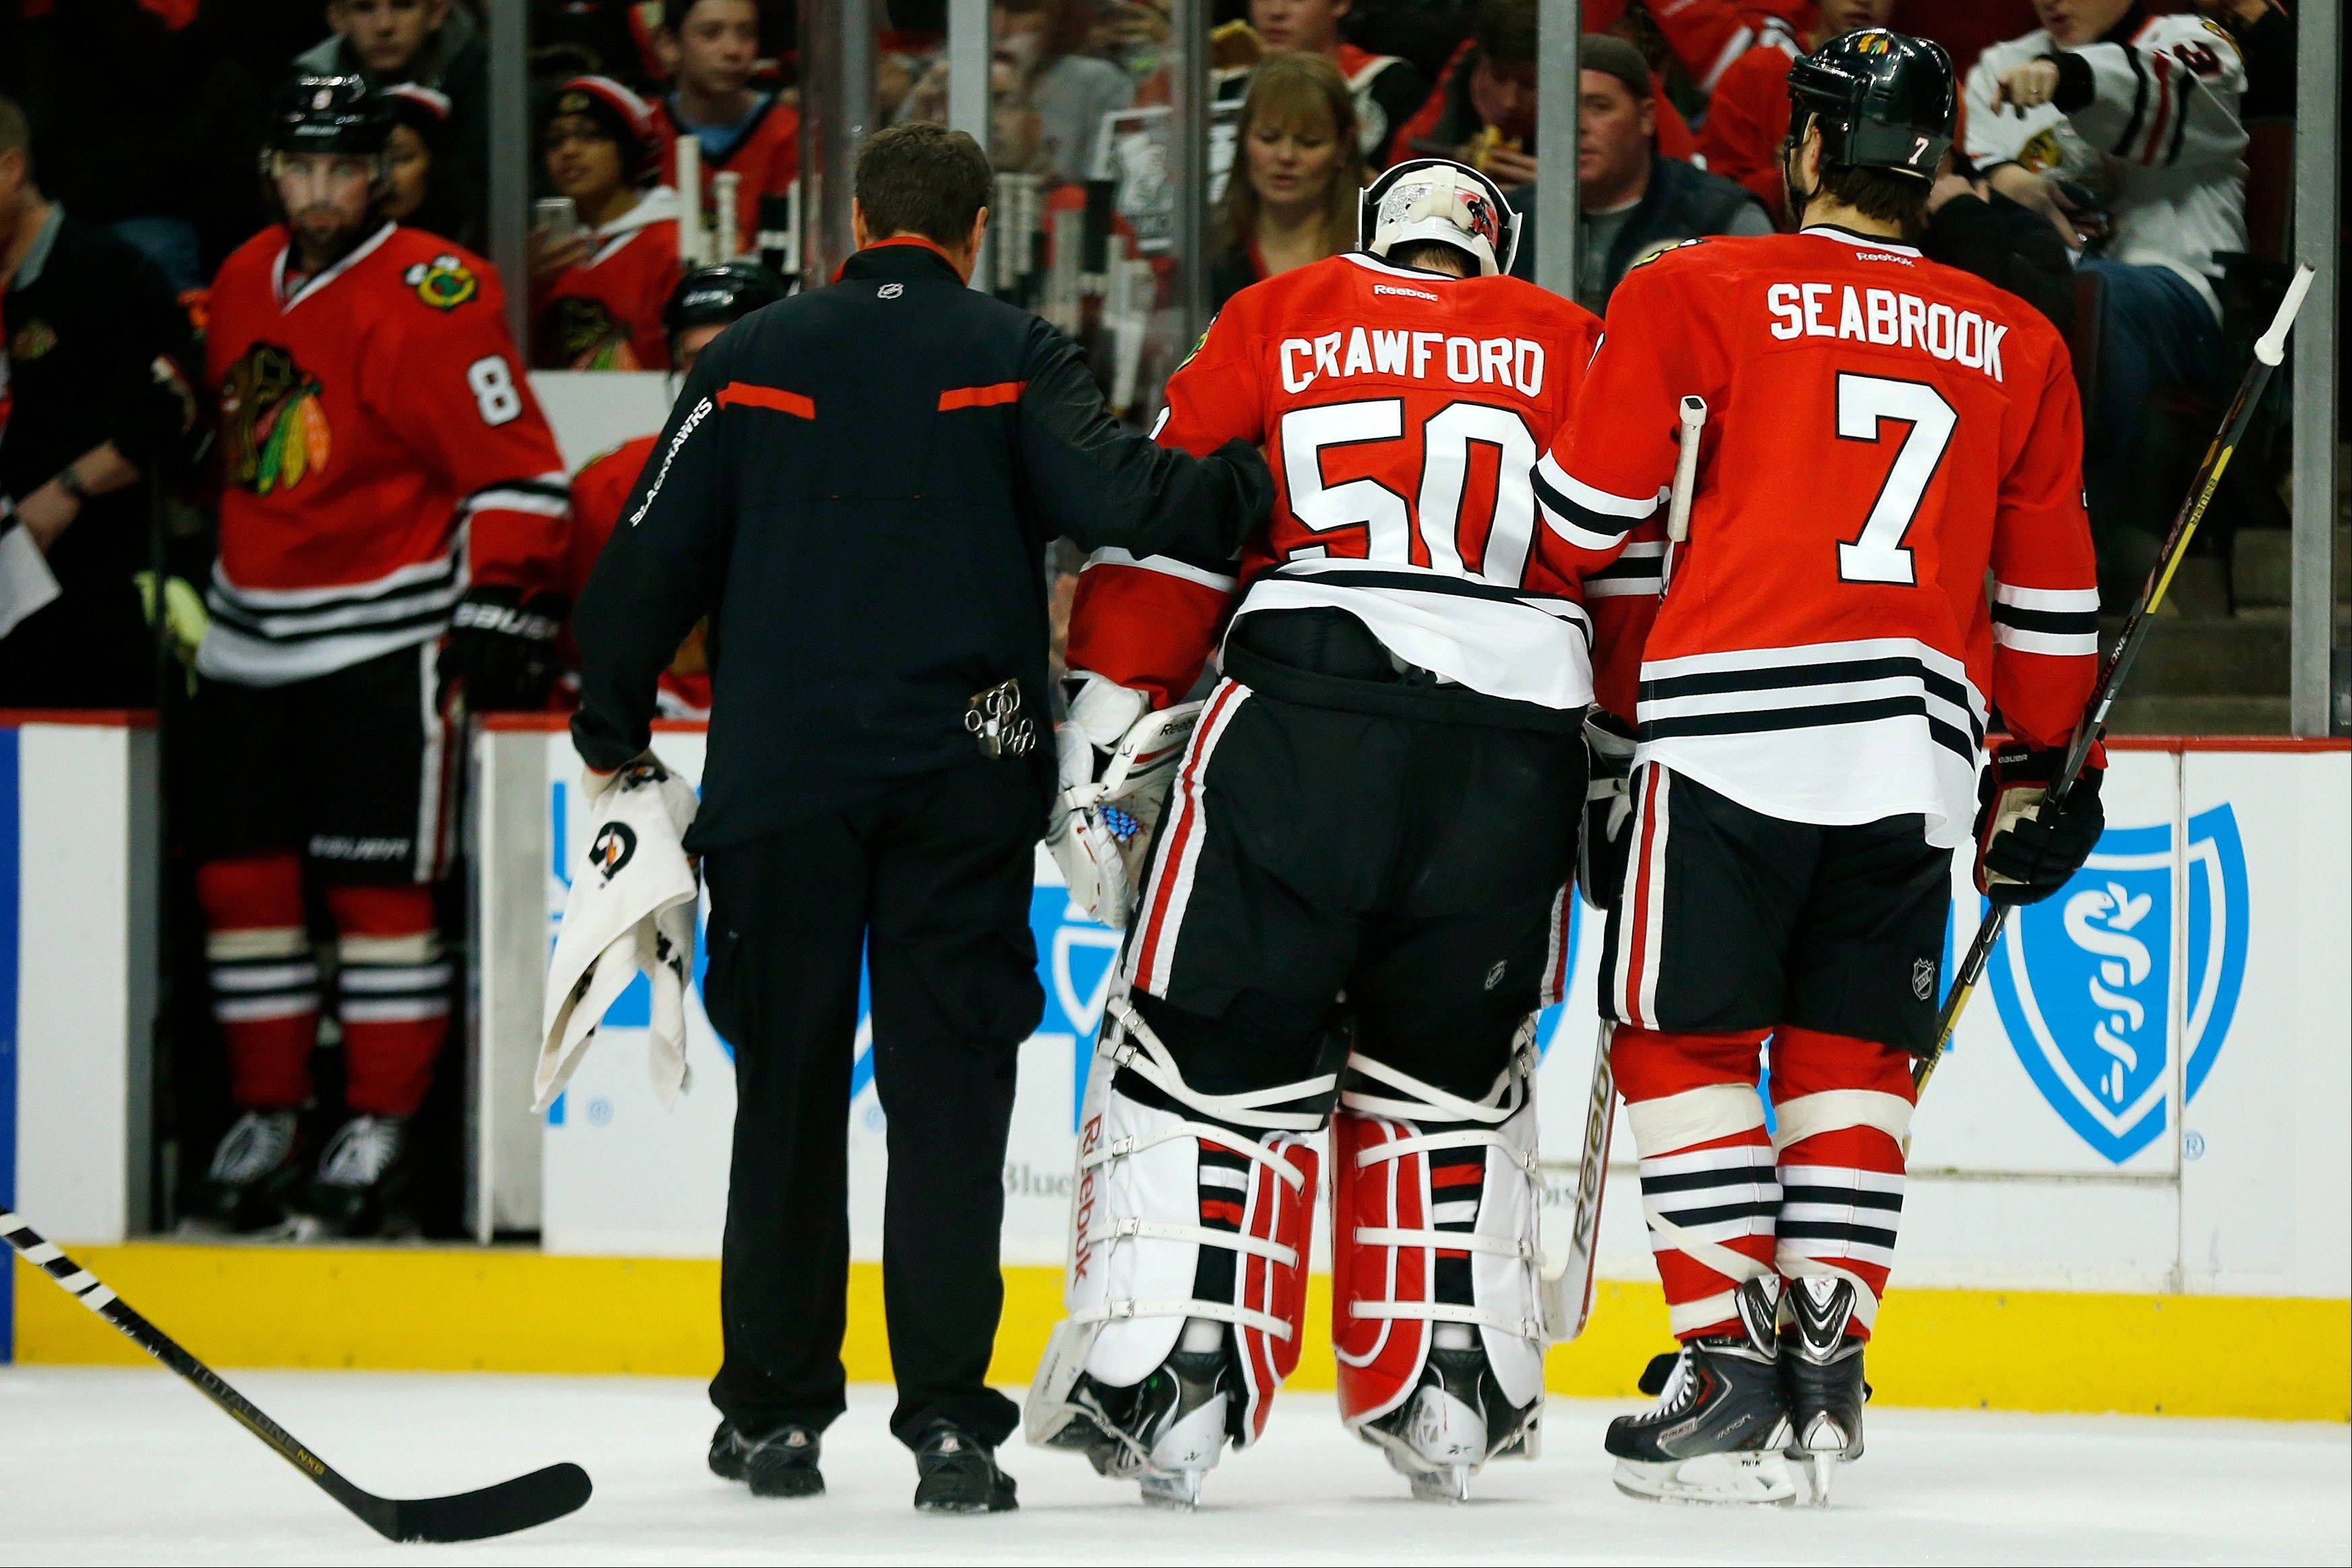 Chicago Blackhawks goalie Corey Crawford (50) is helped off the ice after suffering an injury against the Florida Panthers last Sunday. Team officials said Tuesday he will miss three weeks.